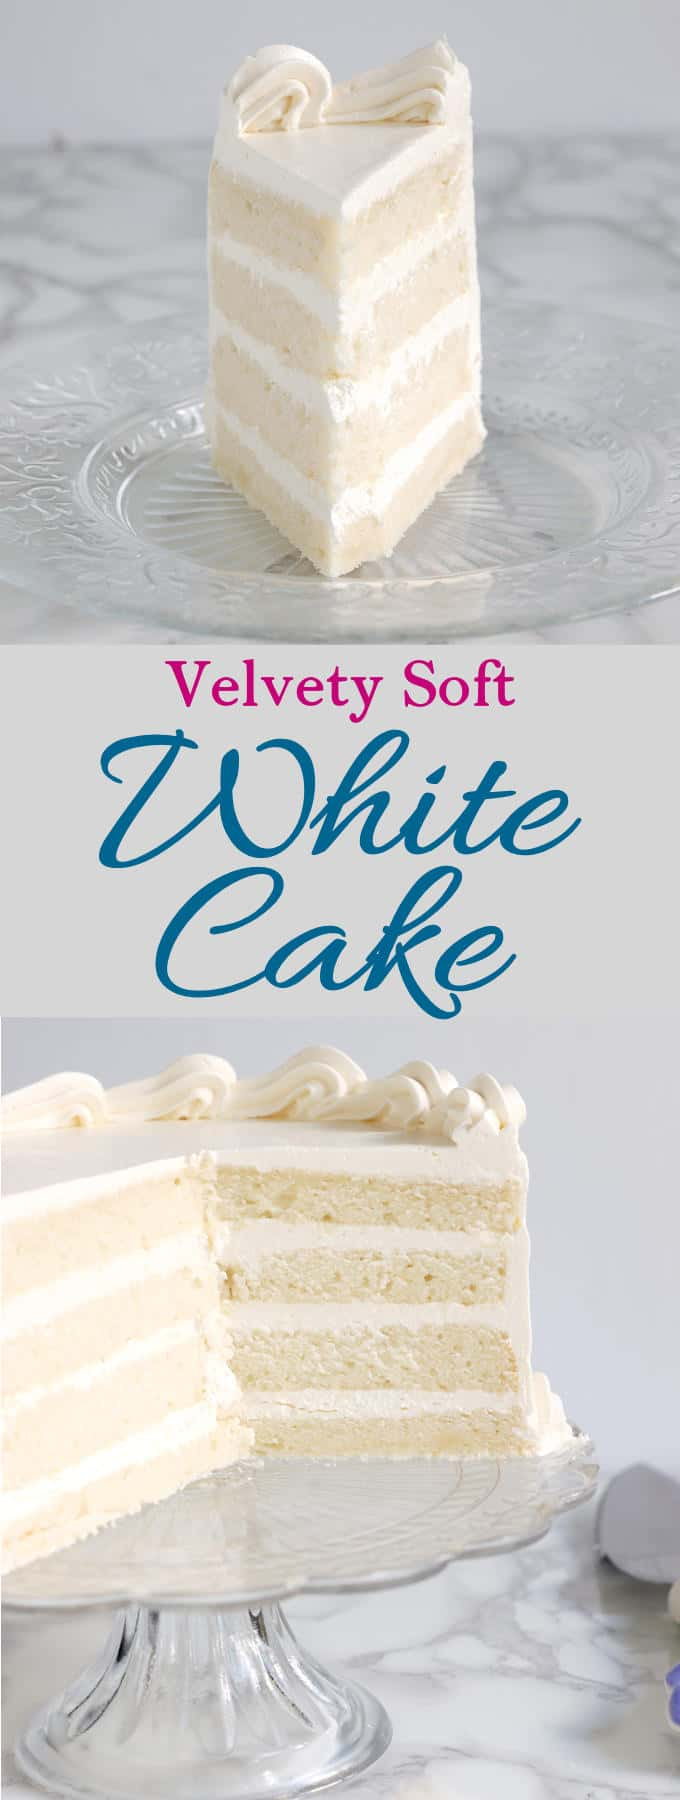 Velvety, soft white cake made from scratch is easy to do. How you mix the cake makes a big difference. Find out why the reverse creaming technique is the way to get a white cake with a tender and moist crumb. #easy #moist #best #sourcream #soft